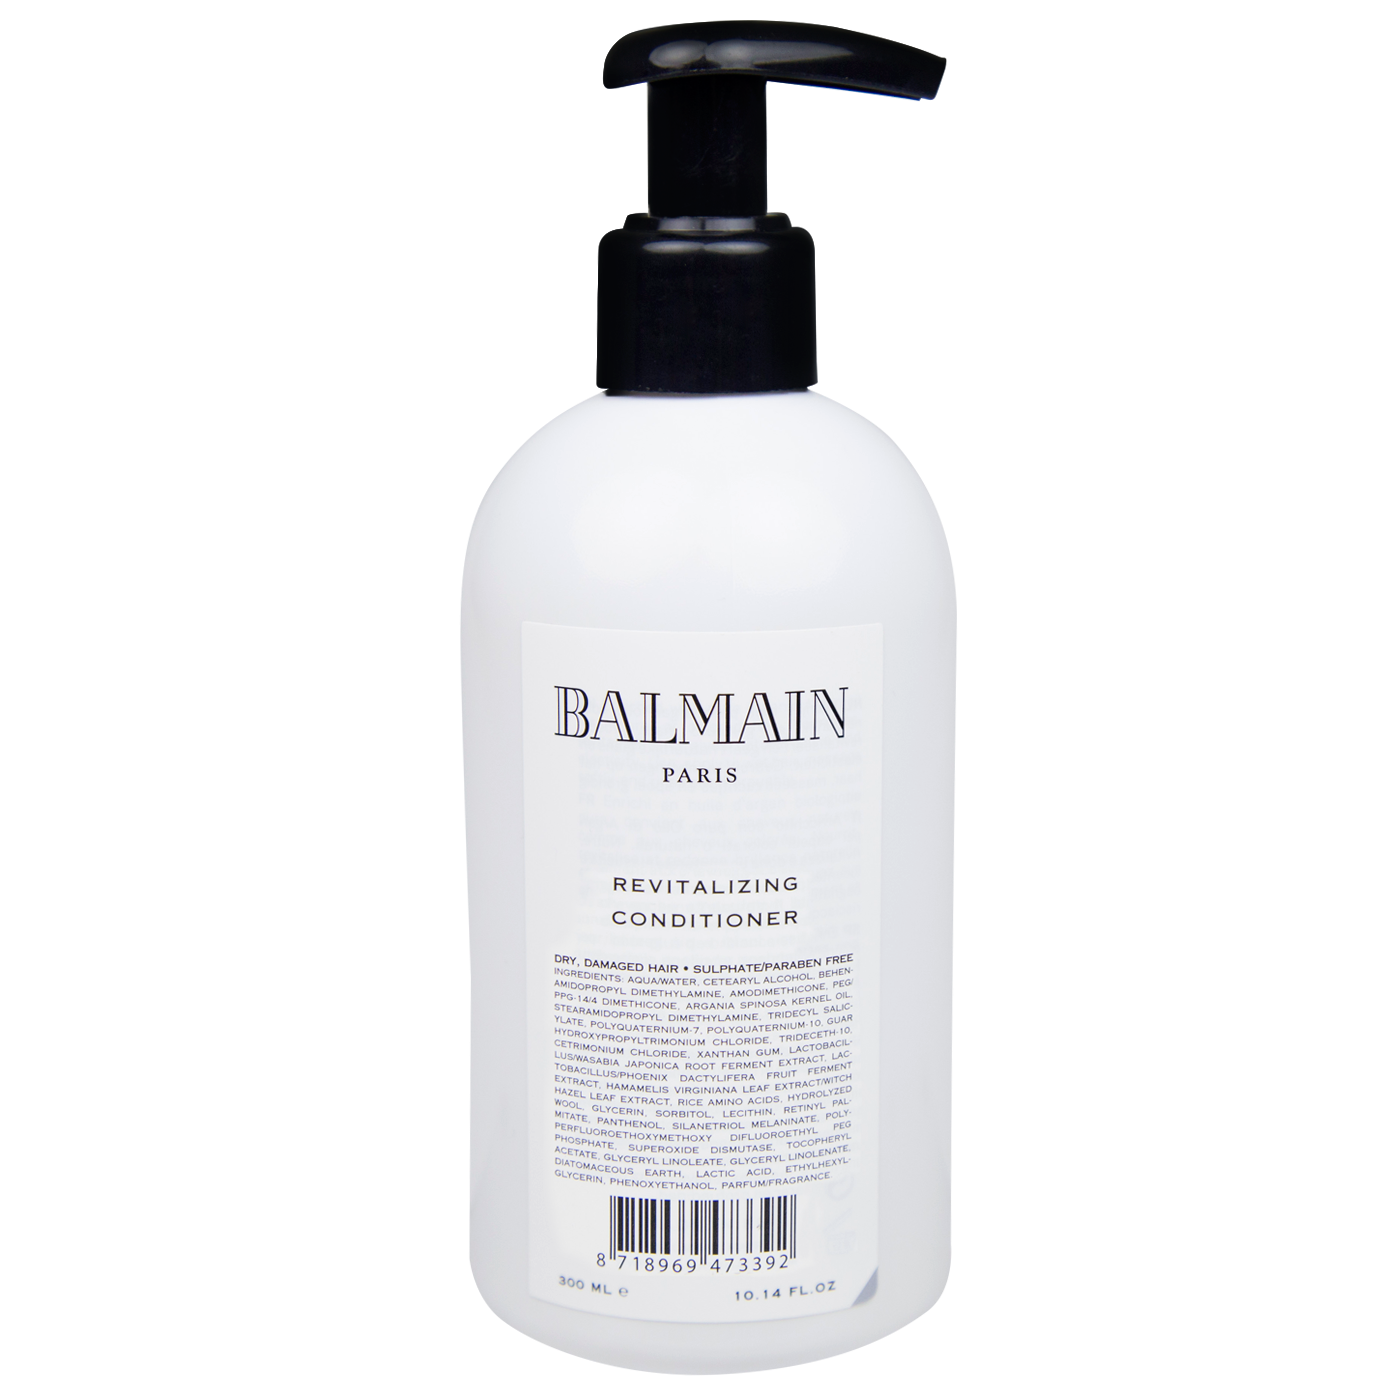 Balmain Revitalizing Conditioner 300 ml | Acondicionador Revitalizante